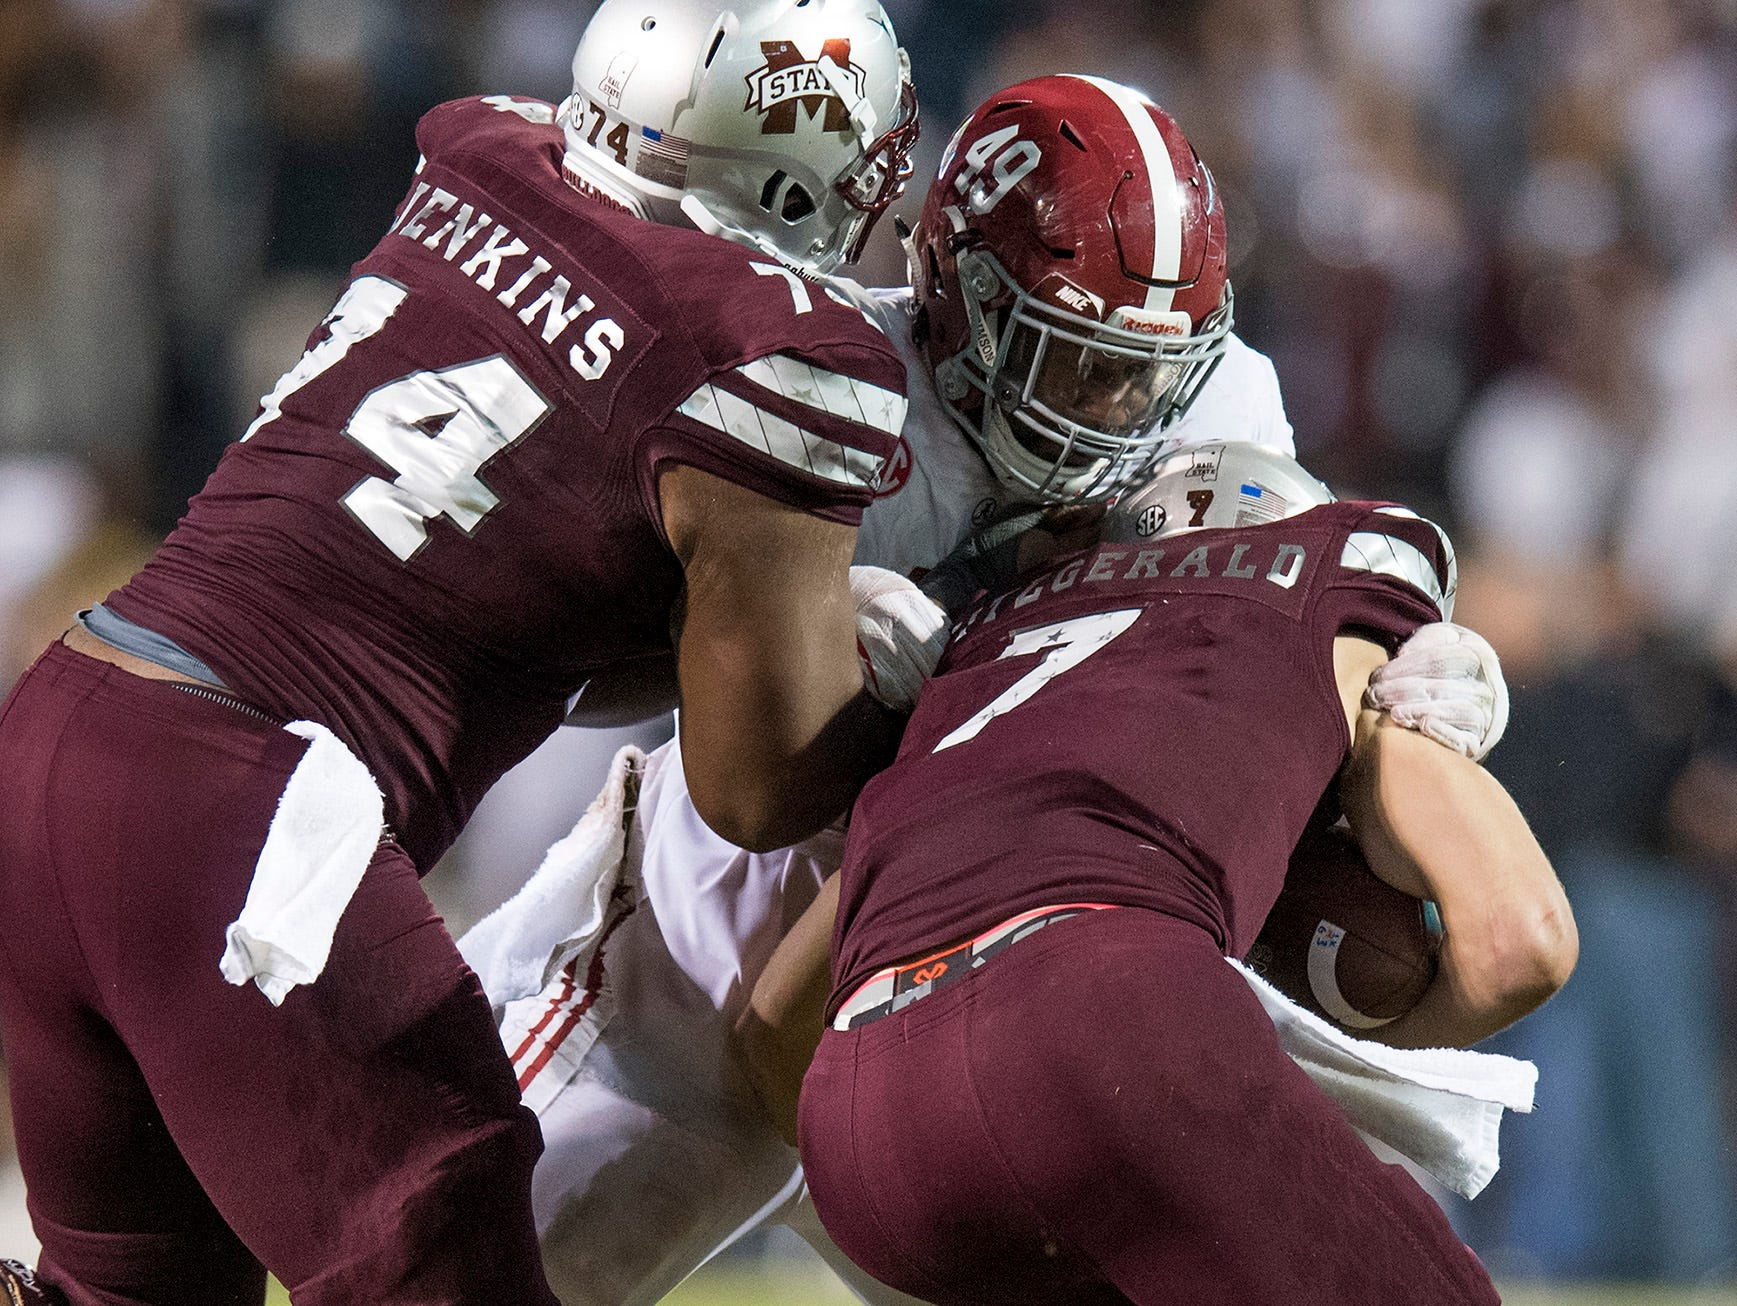 Alabama defensive lineman Isaiah Buggs (49) stops Mississippi State quarterback Nick Fitzgerald (7) late in second half action in Starkville, Ms. on Saturday November 11, 2017. (Mickey Welsh / Montgomery Advertiser)